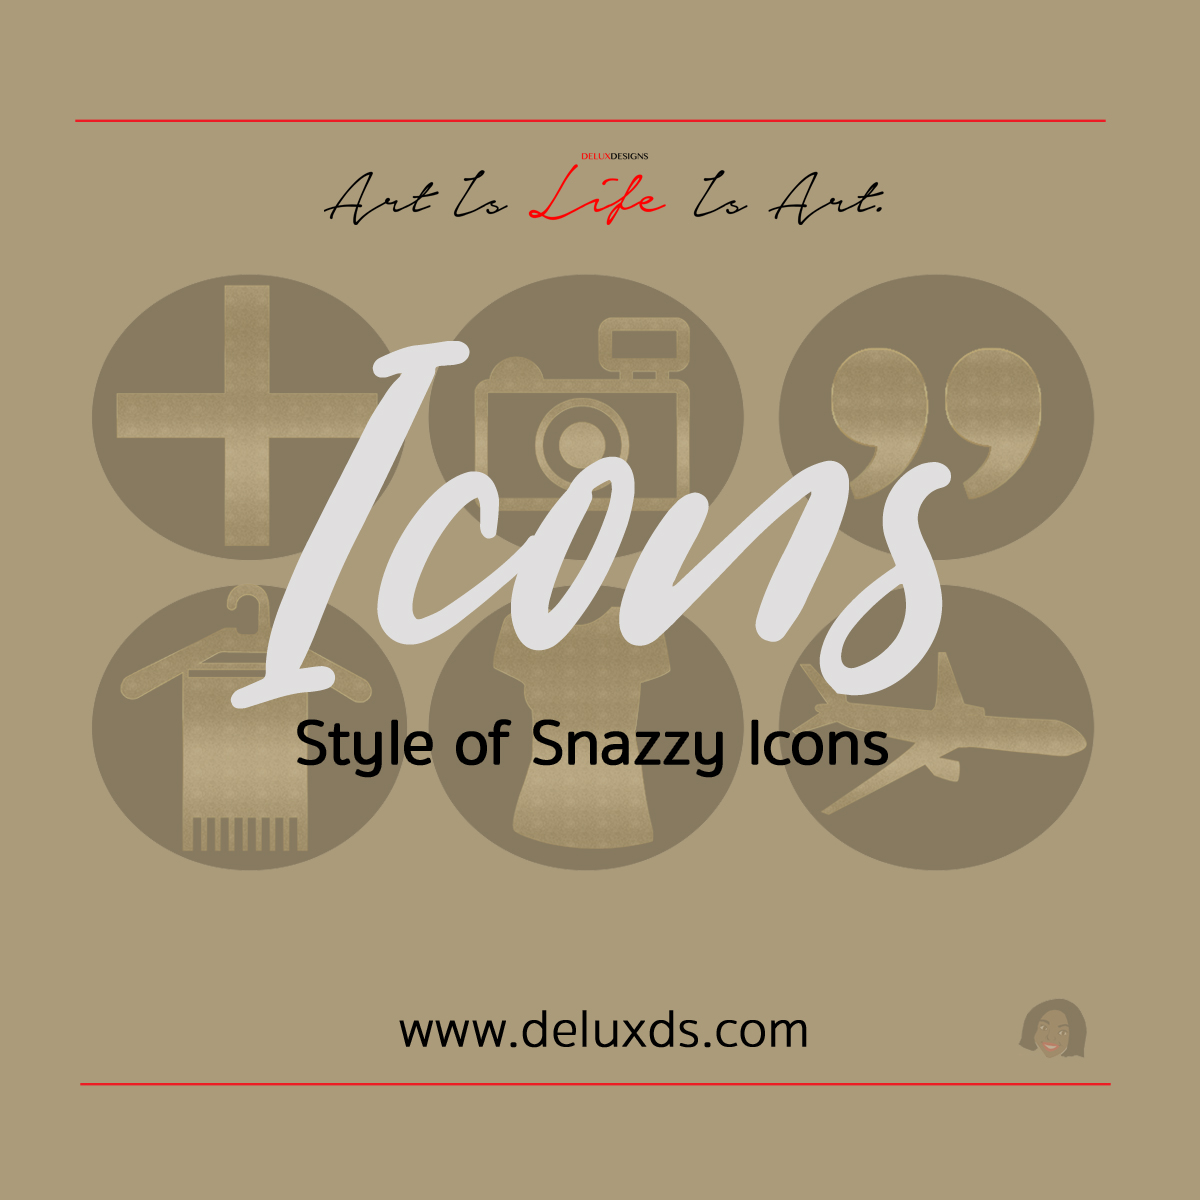 Style of Snazzy Icons